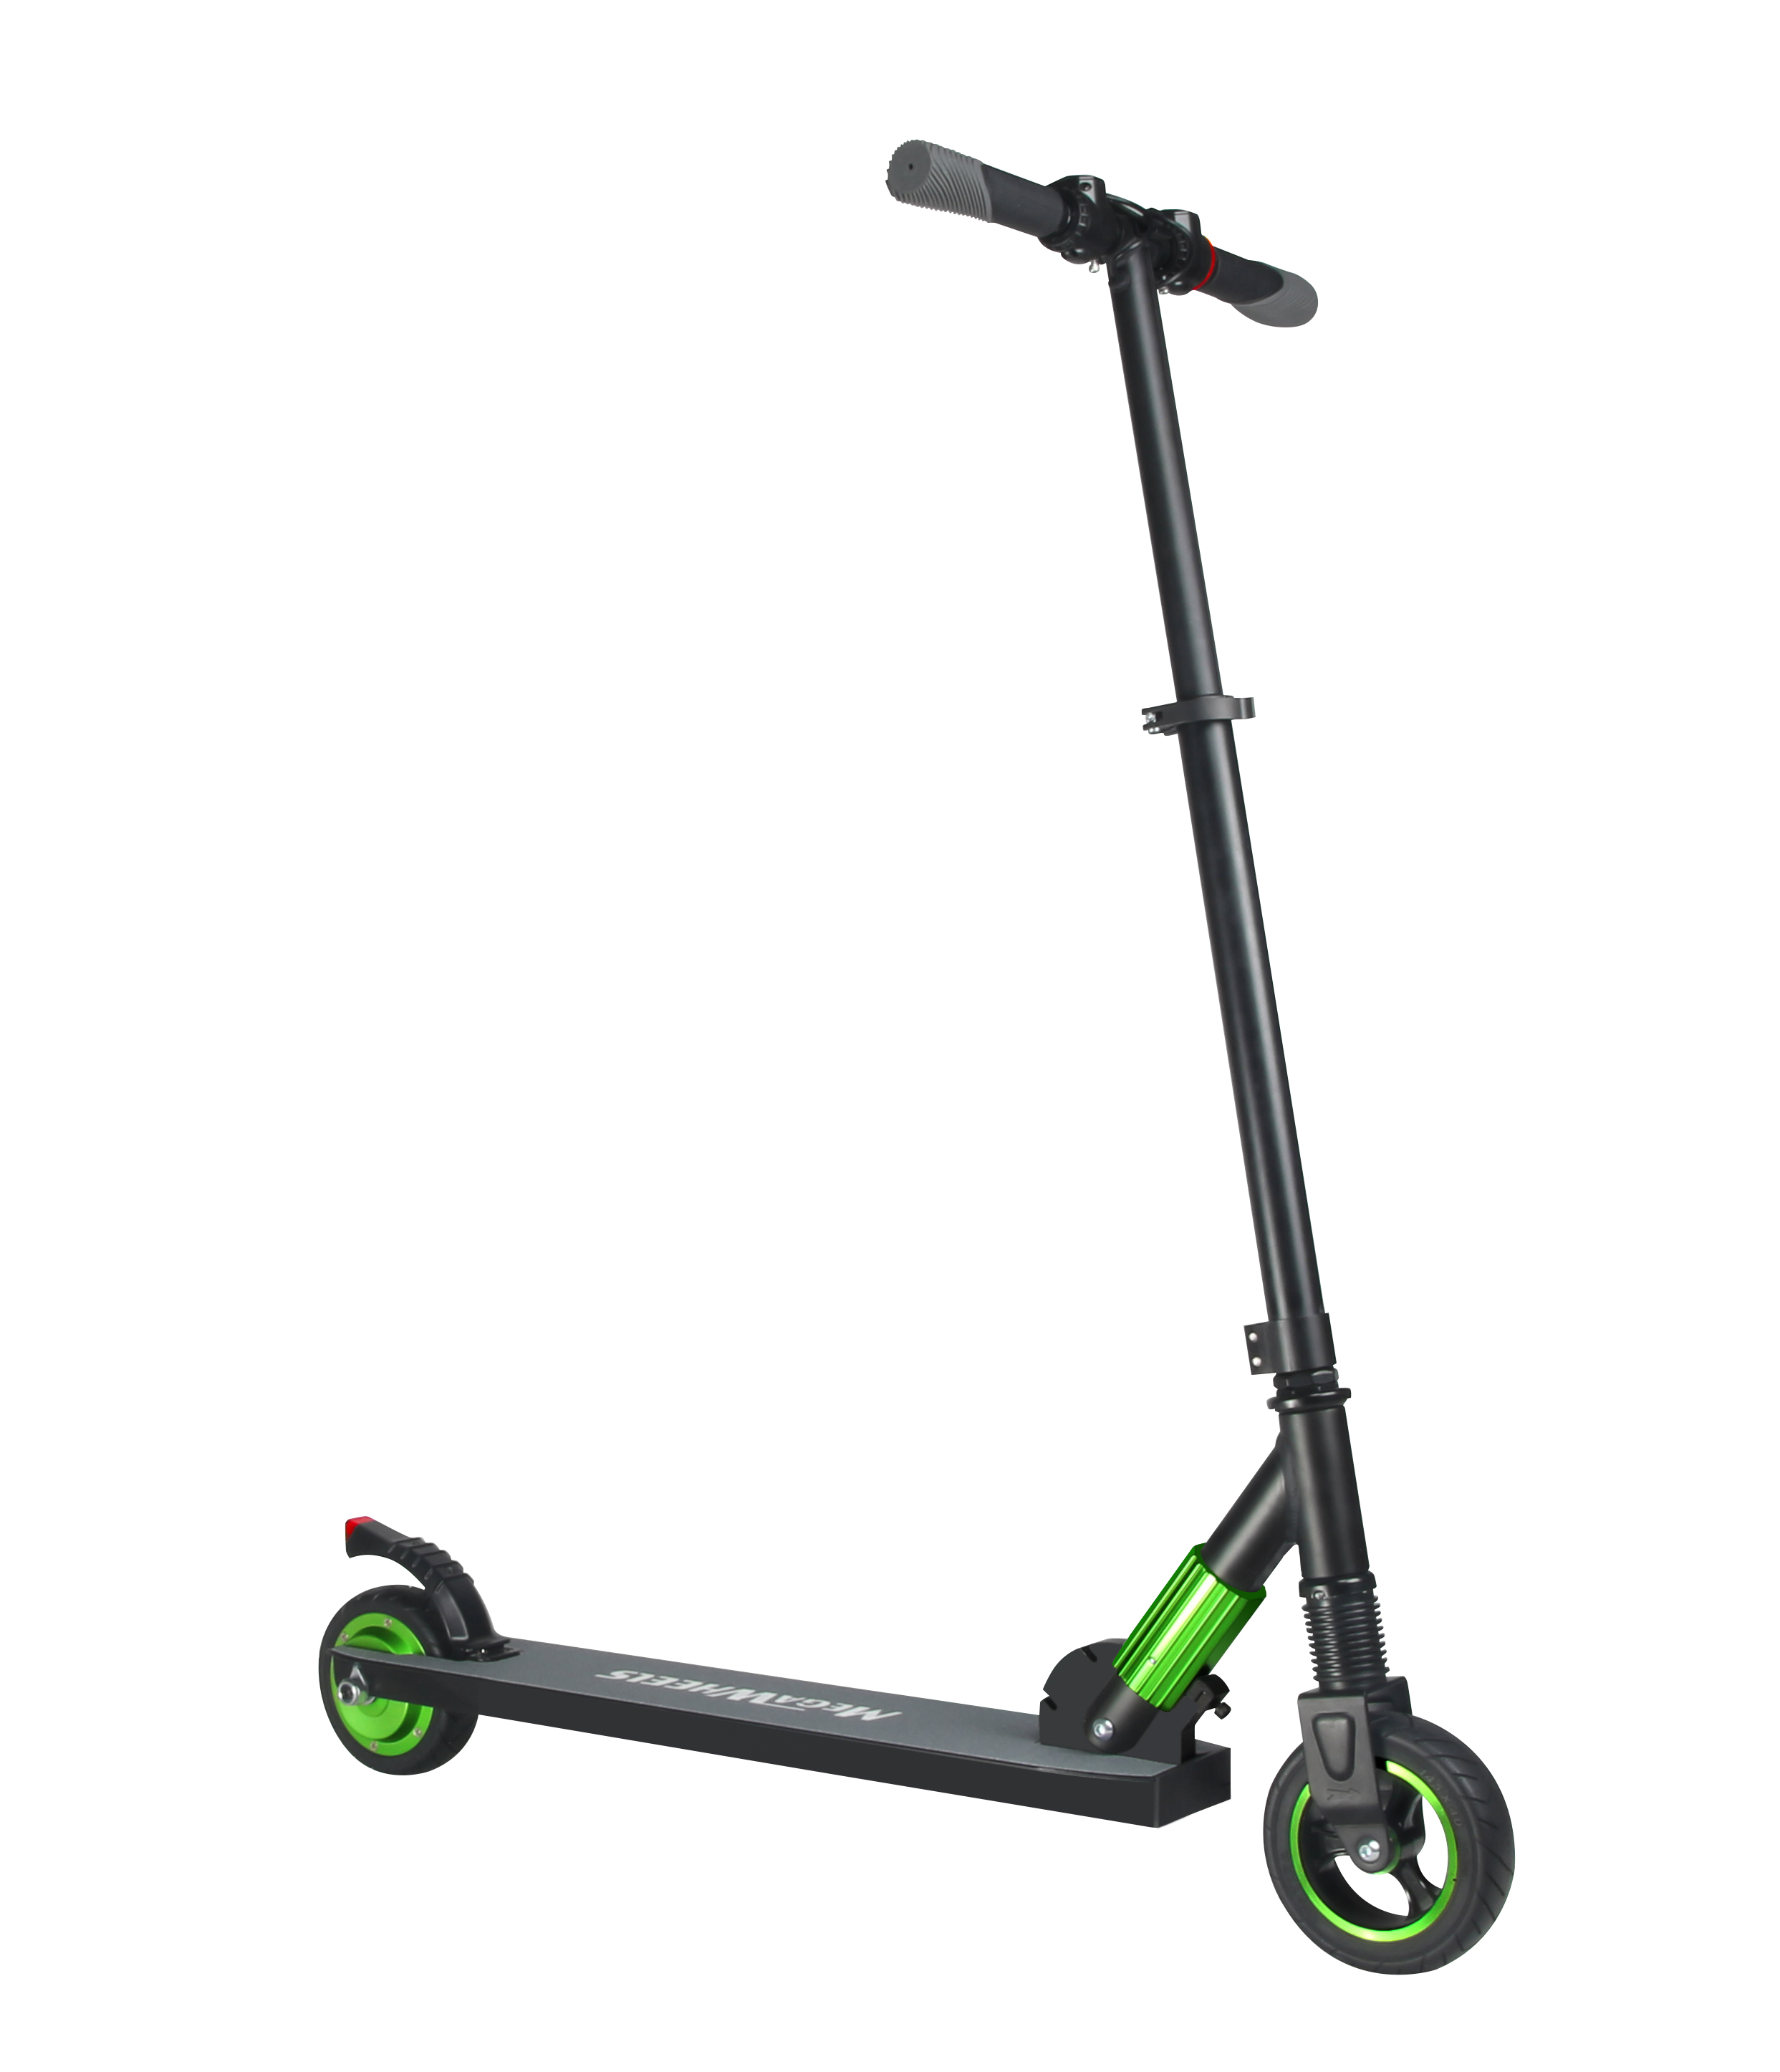 250w E Scooter Electric Scooter Adult Kick Skateboard